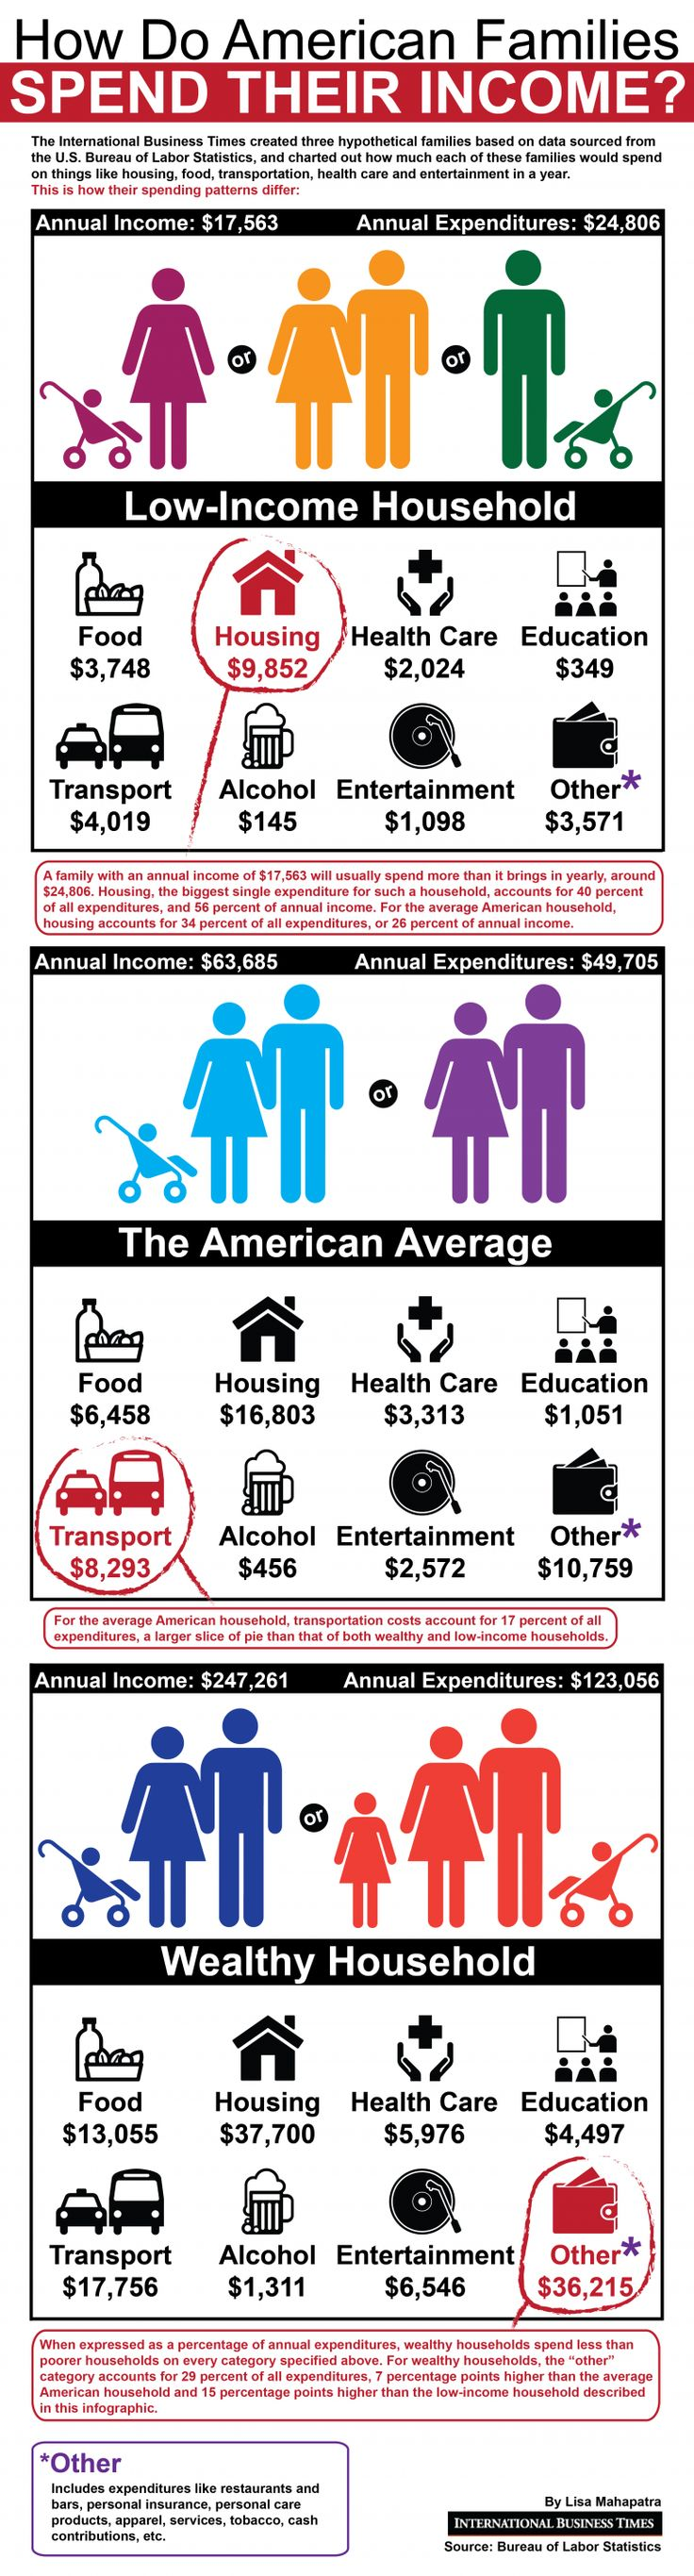 Consumer Spending: How Much Of Their Income Do Poor And Rich American Families Spend On Housing, Education, Healthcare, Food And Transportation? [Infographic]